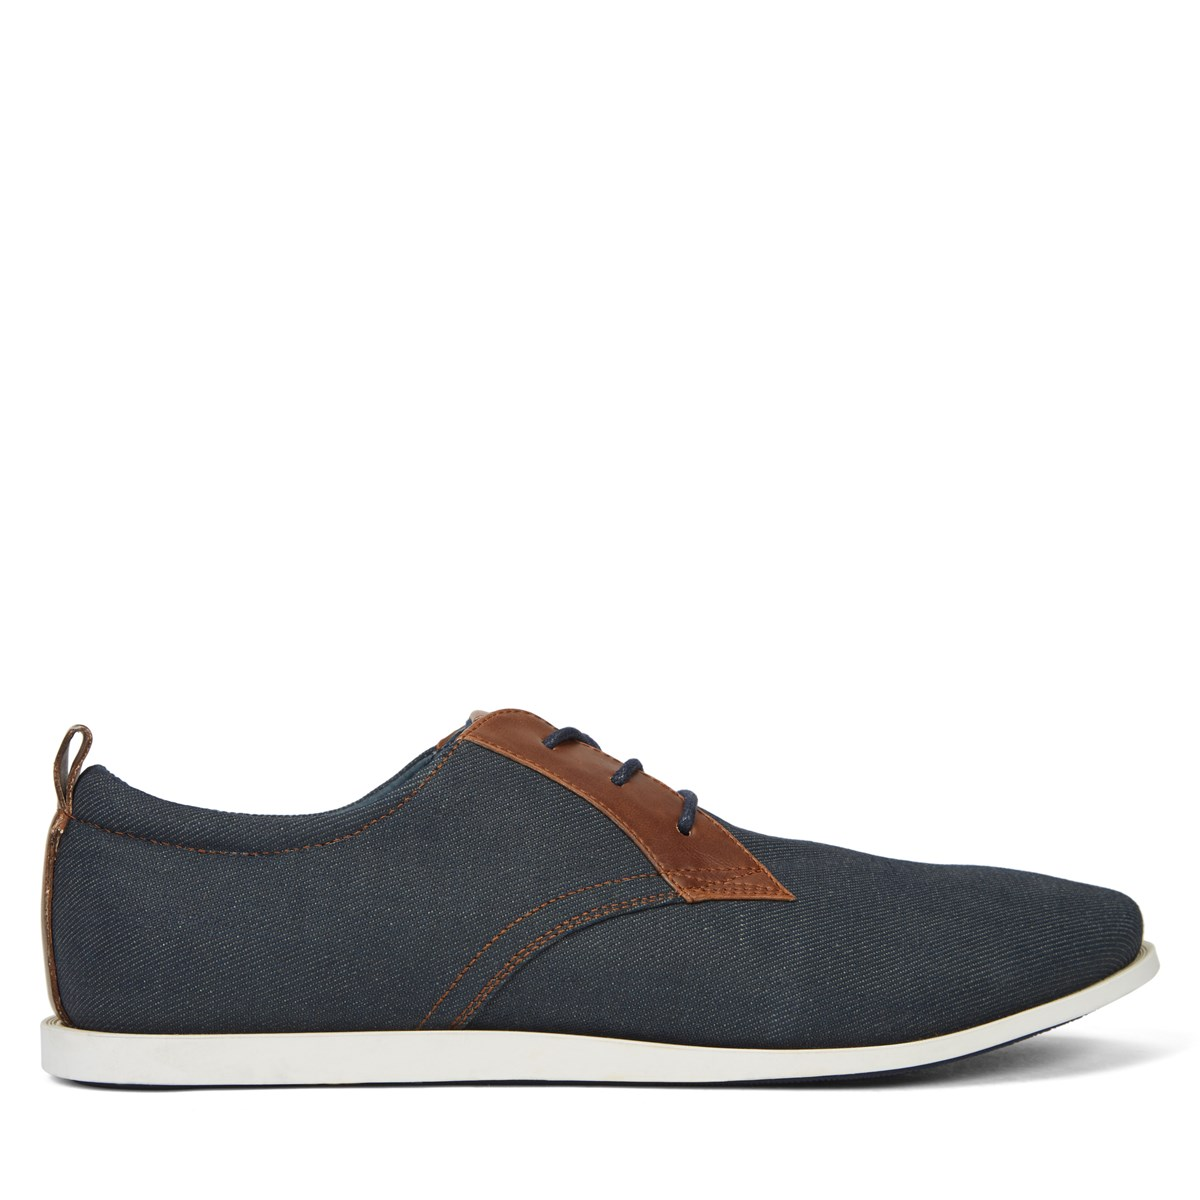 Men's Luis Navy Denim Lace-Up Shoe